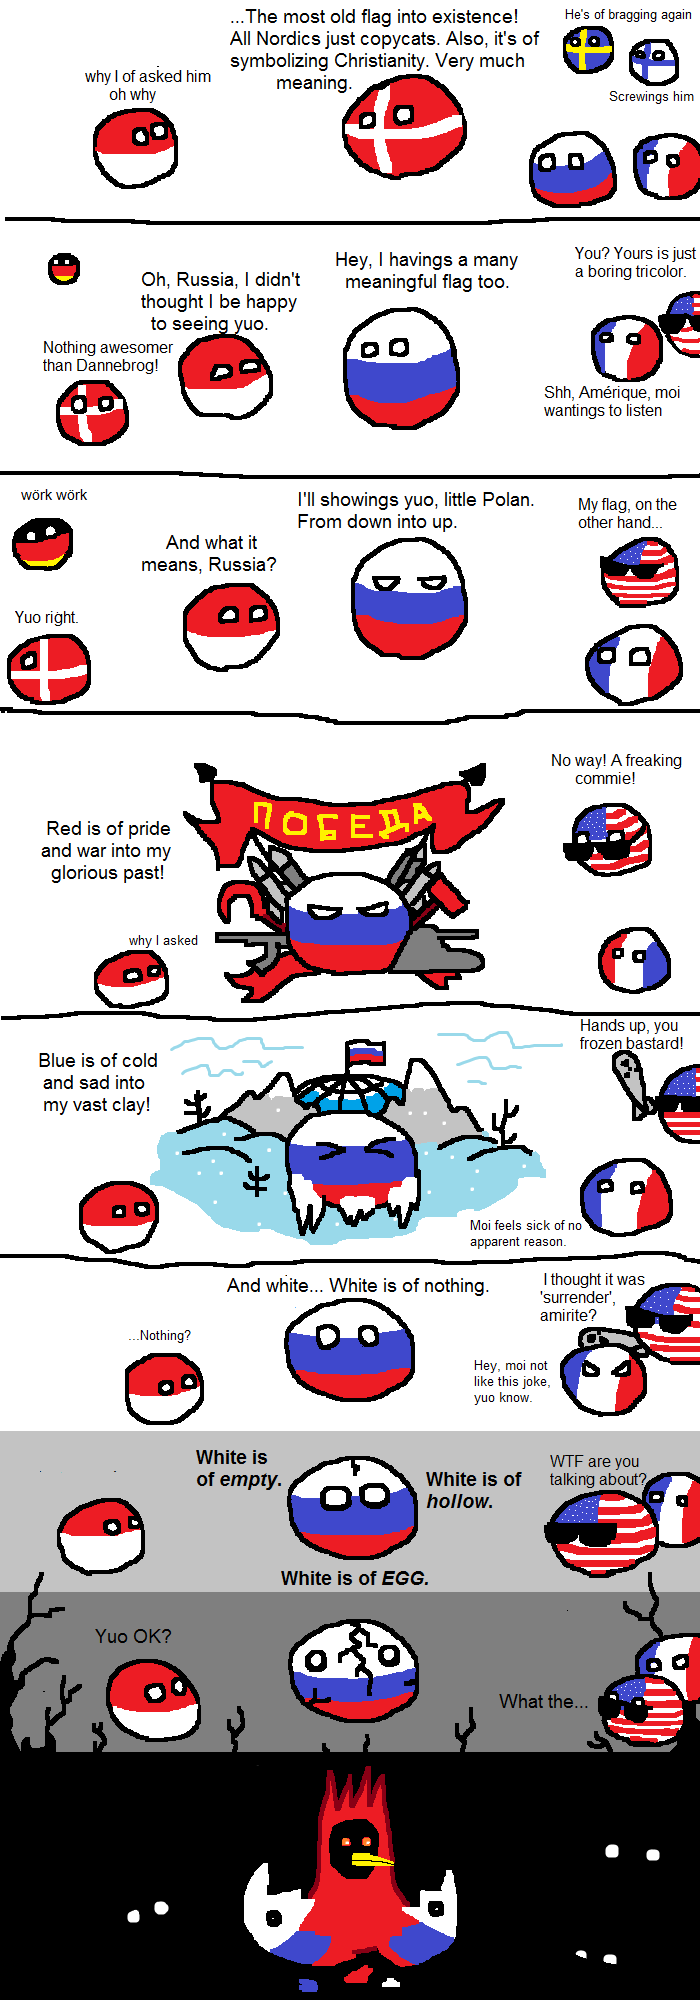 Image - Russia's meaning.png | Polandball Wiki | FANDOM ...